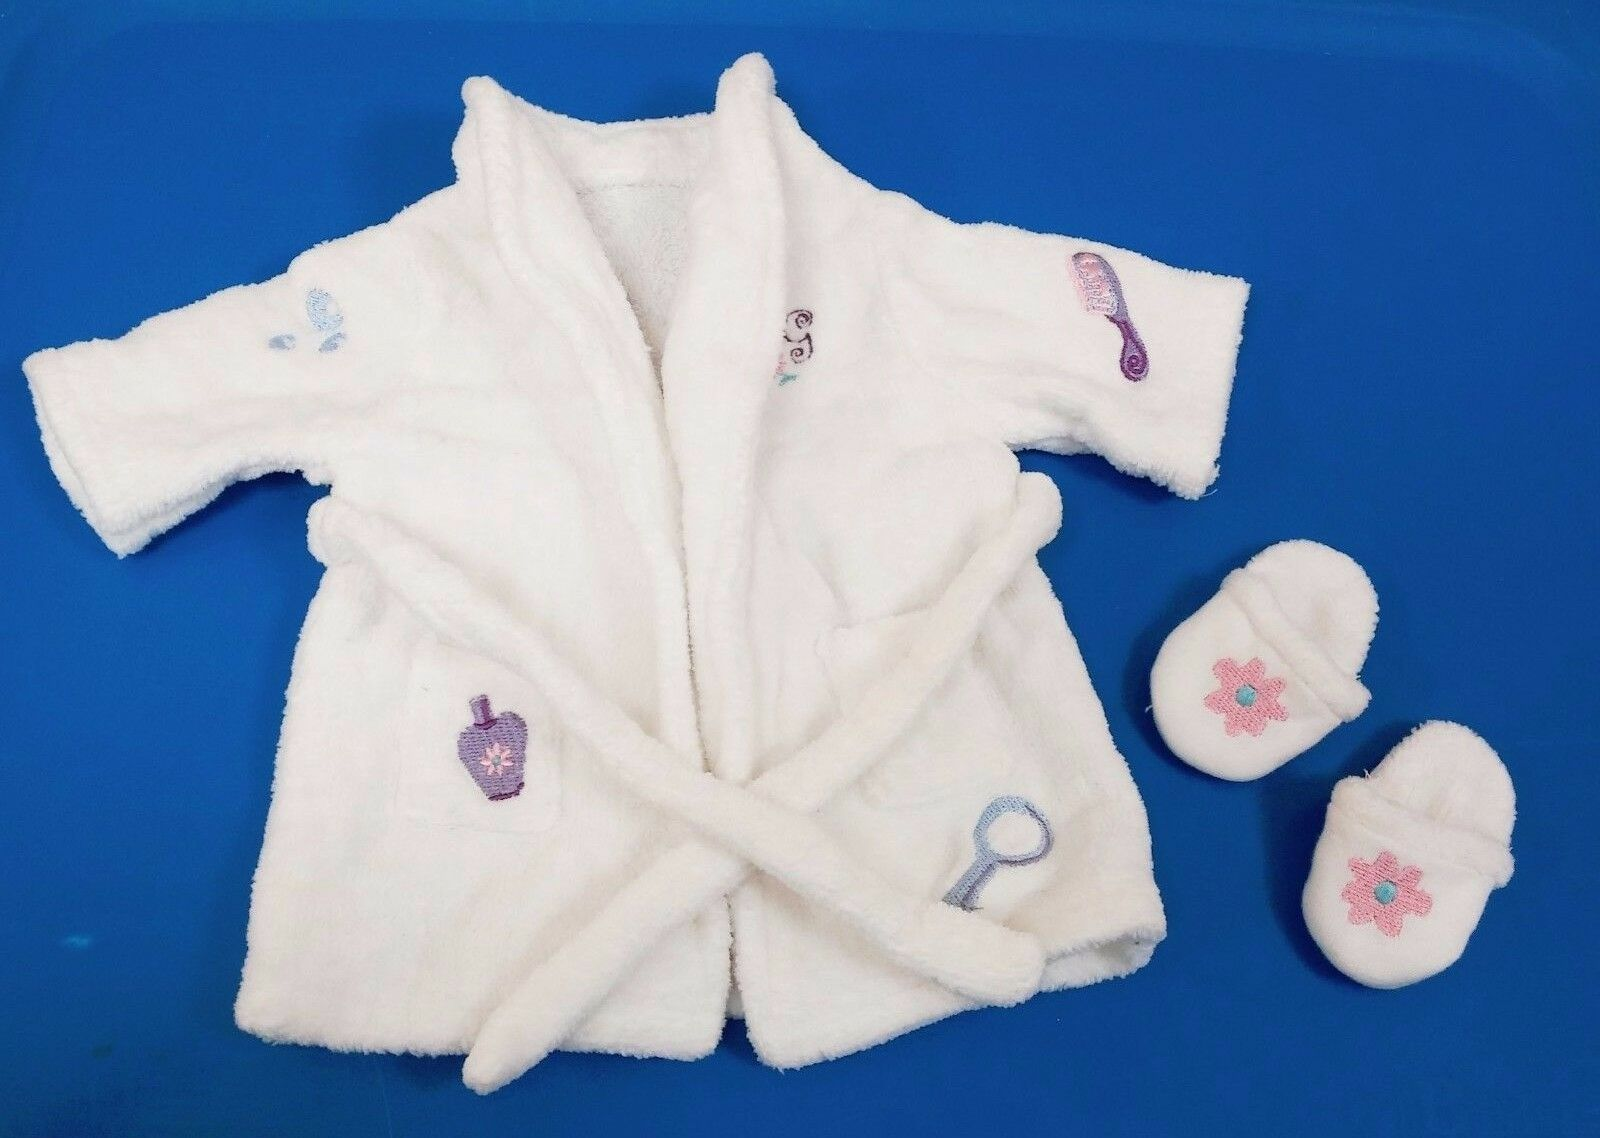 Authentic  AMERICAN GIRL 18  DOLL SPA ROBE   BATHROBE  AND SLIPPERS RETIRED